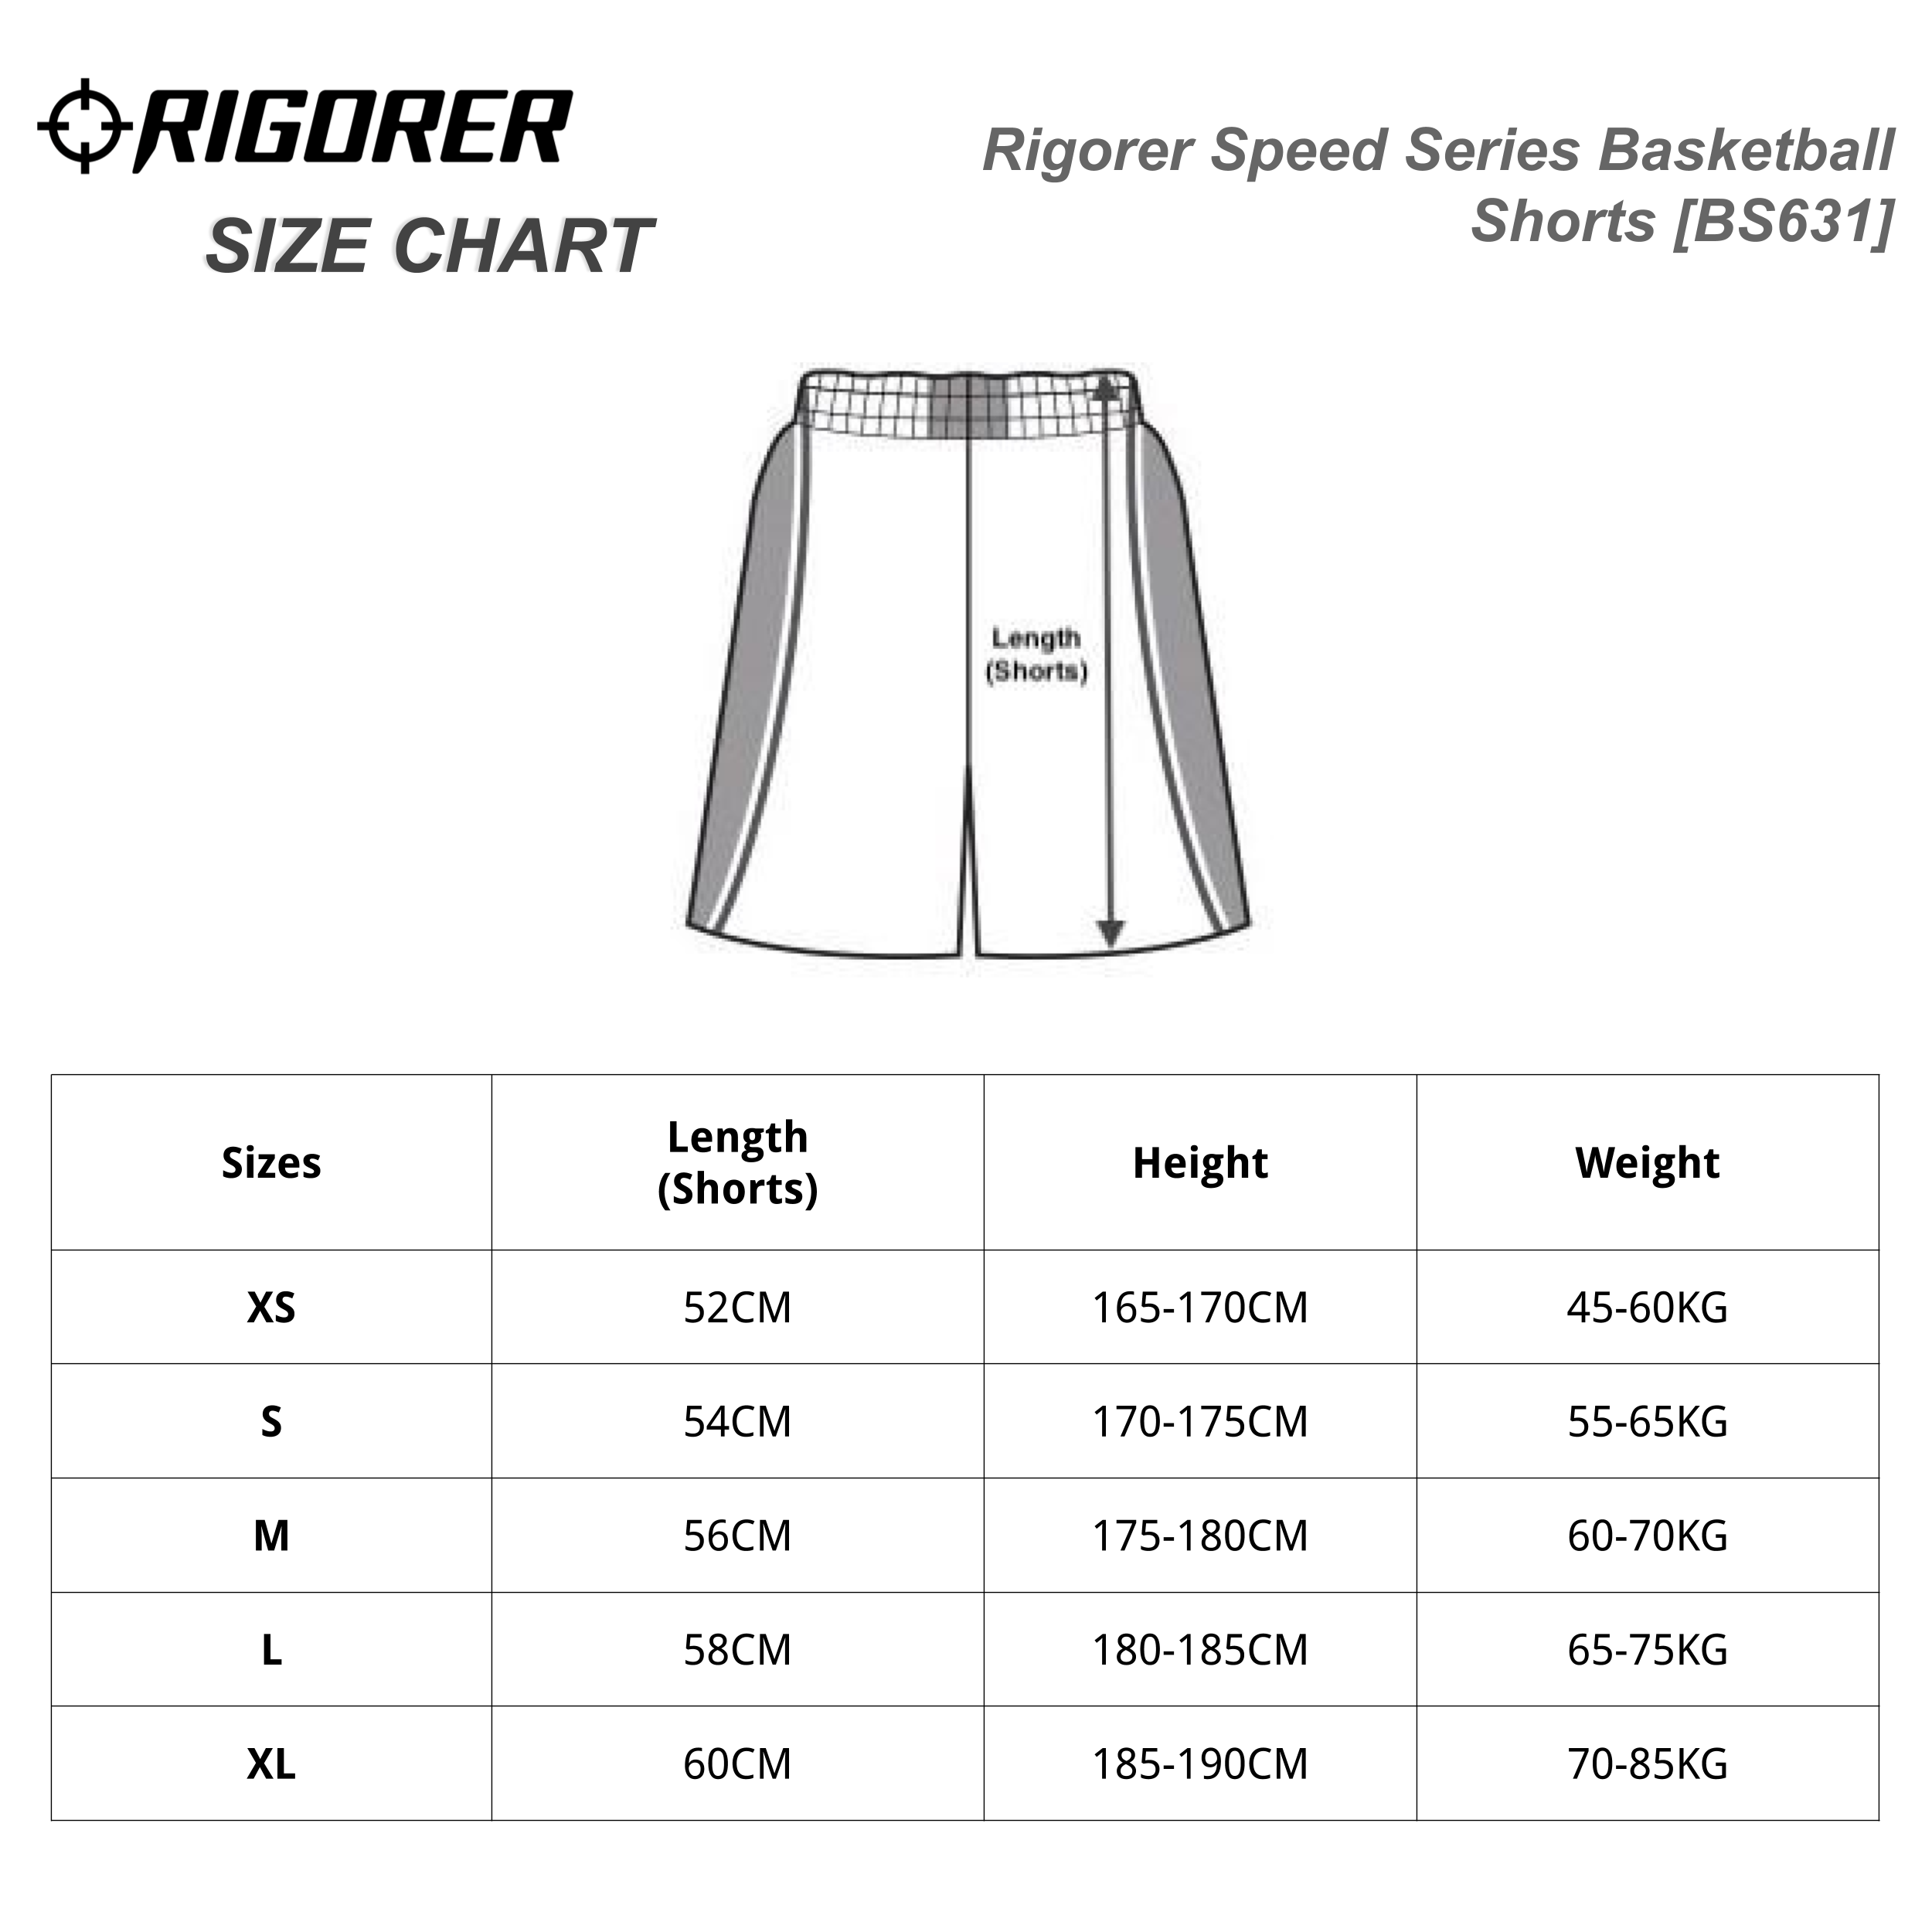 Rigorer Speed Series Basketball Shorts [BS631] Sizing Chart